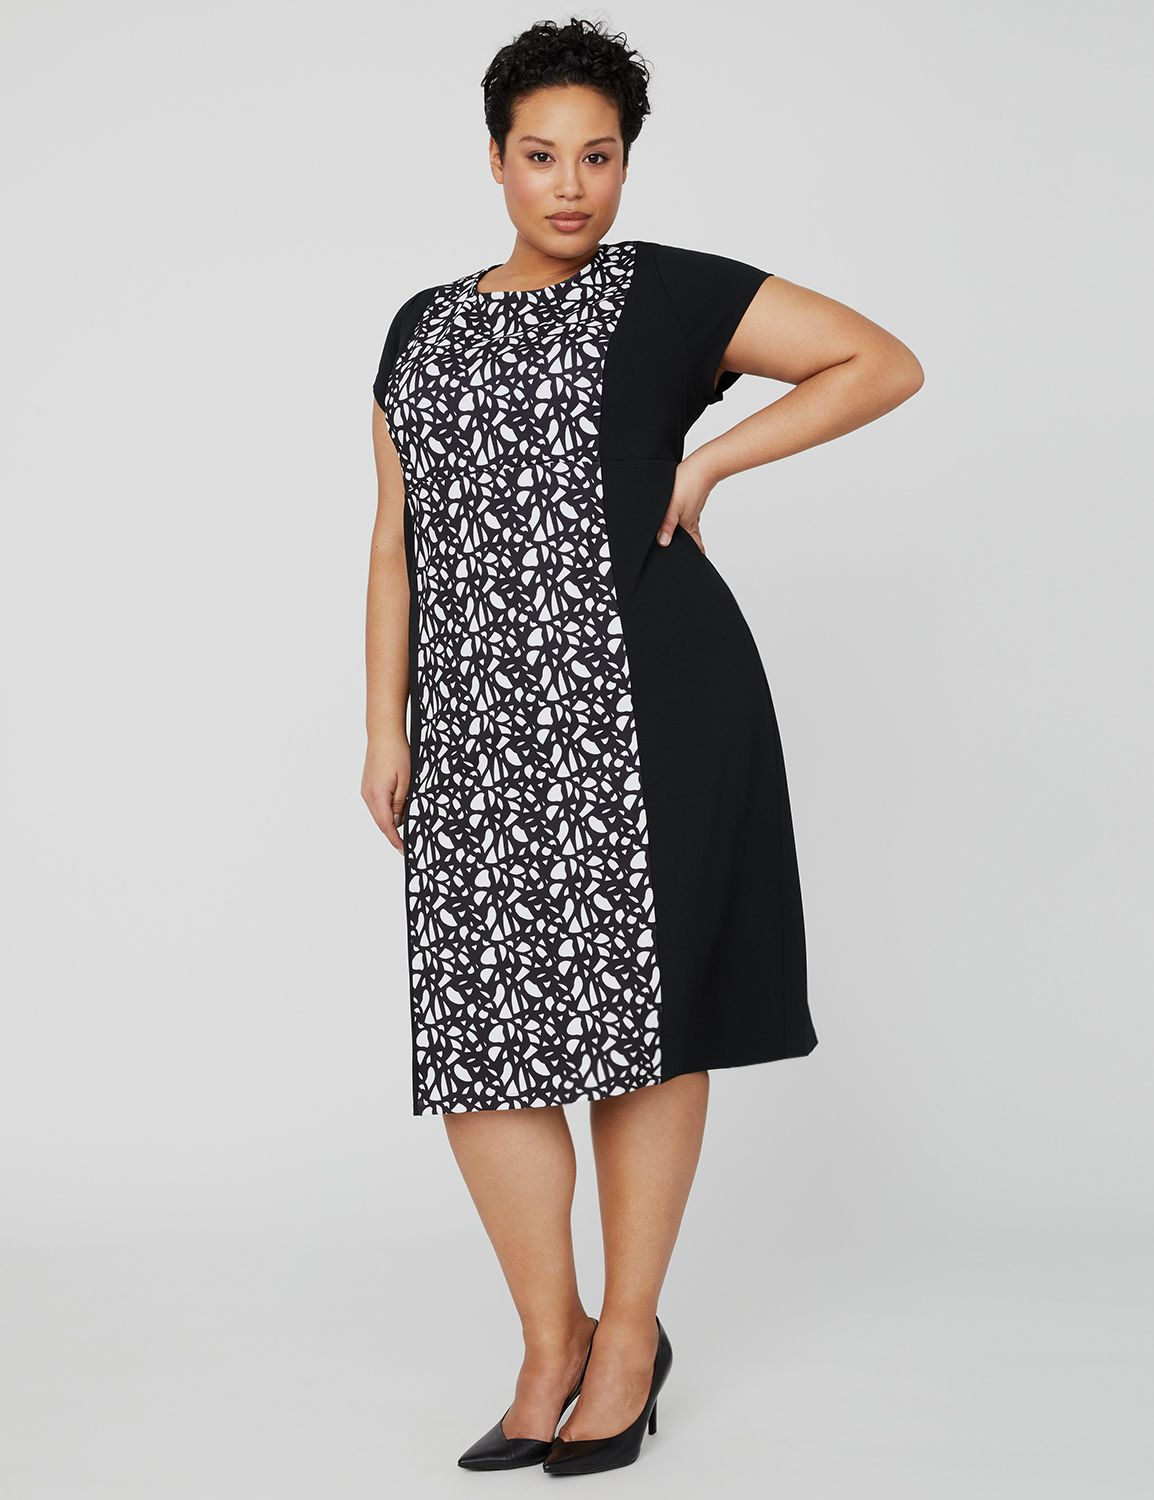 Mirage Crepe Dress 1091427 Printed Knit Crepe Dress MP-300100818